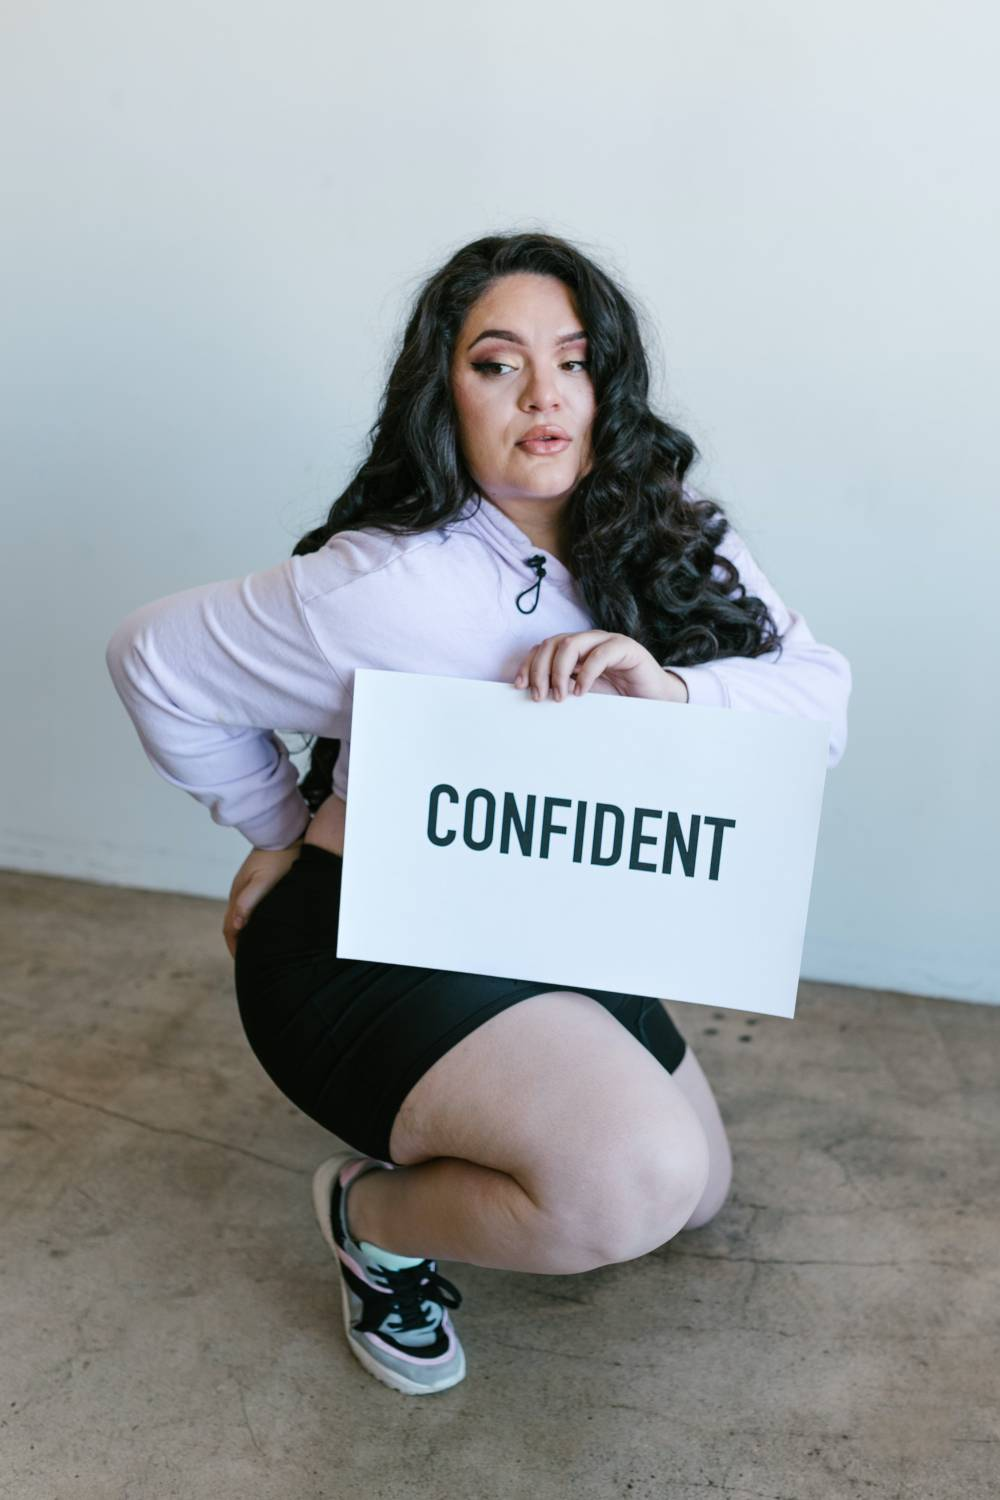 Dress Professionally When Overweight confident